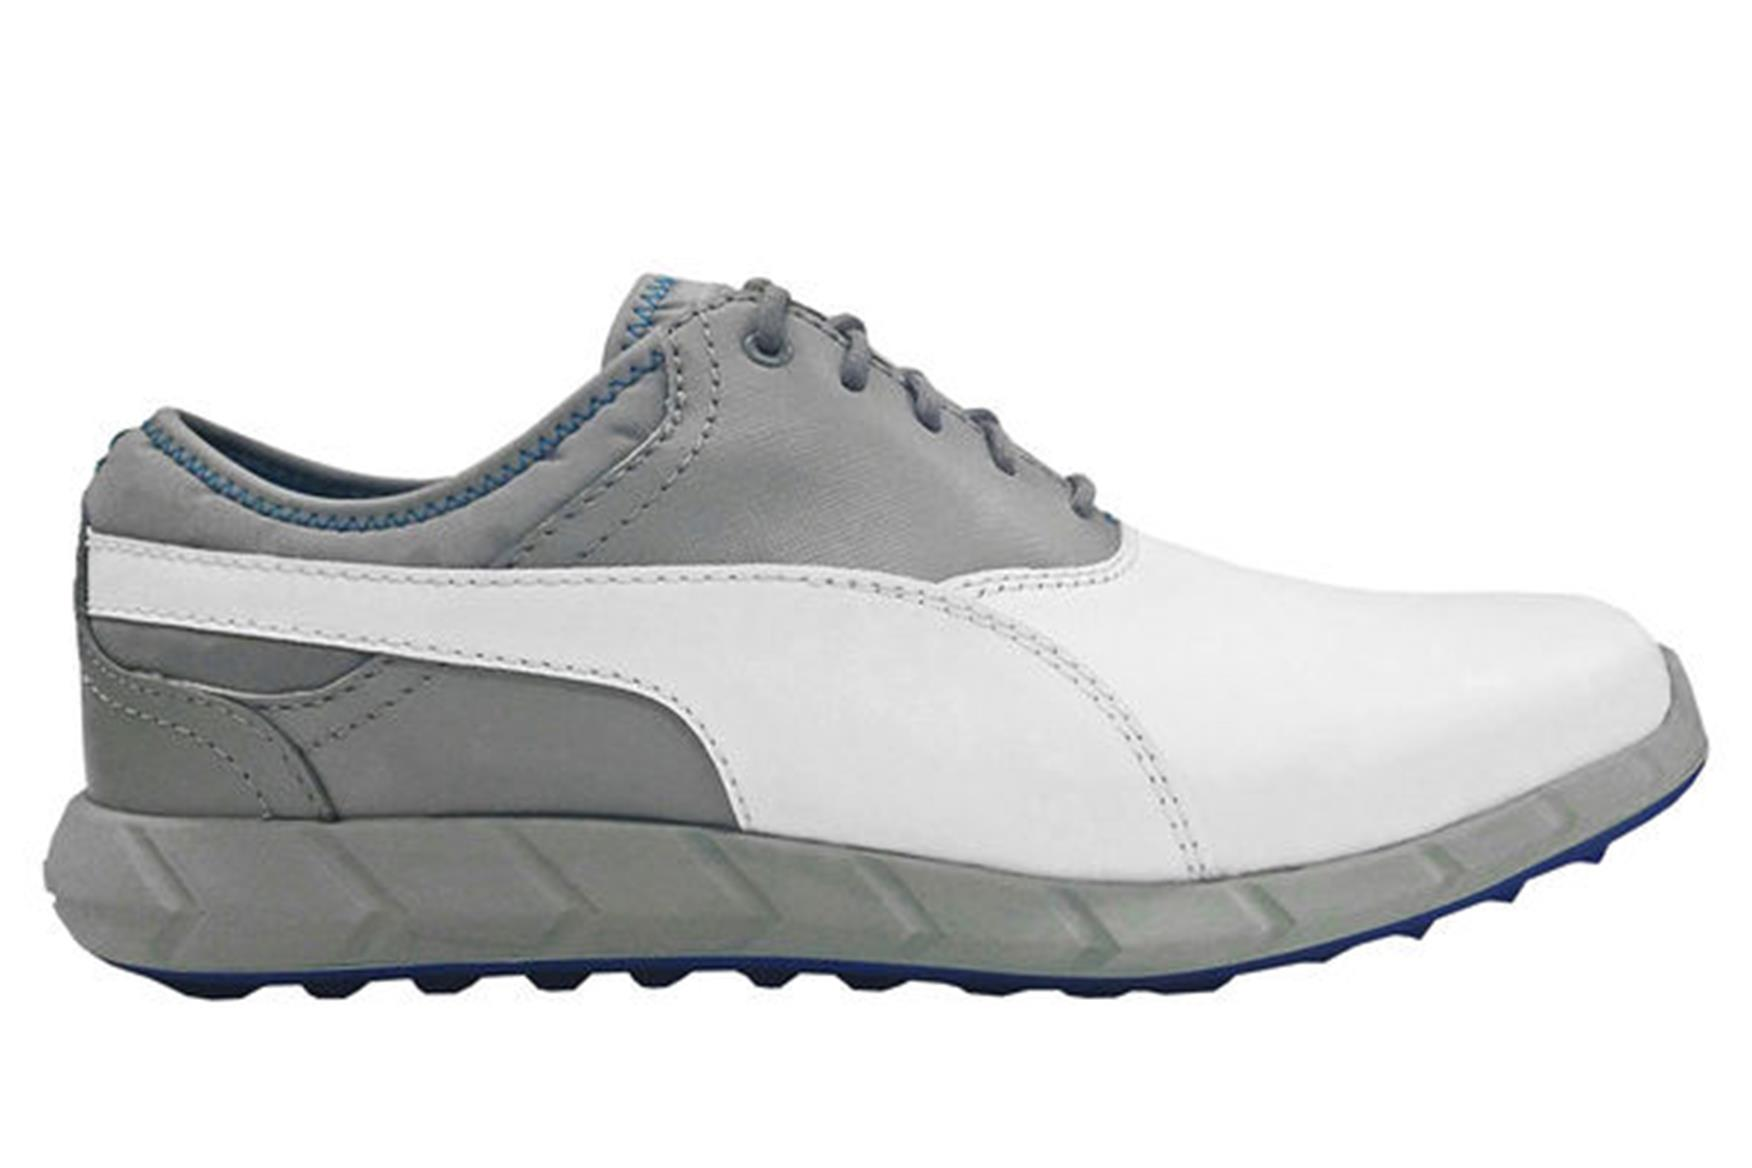 puma ignite drive golf shoes review